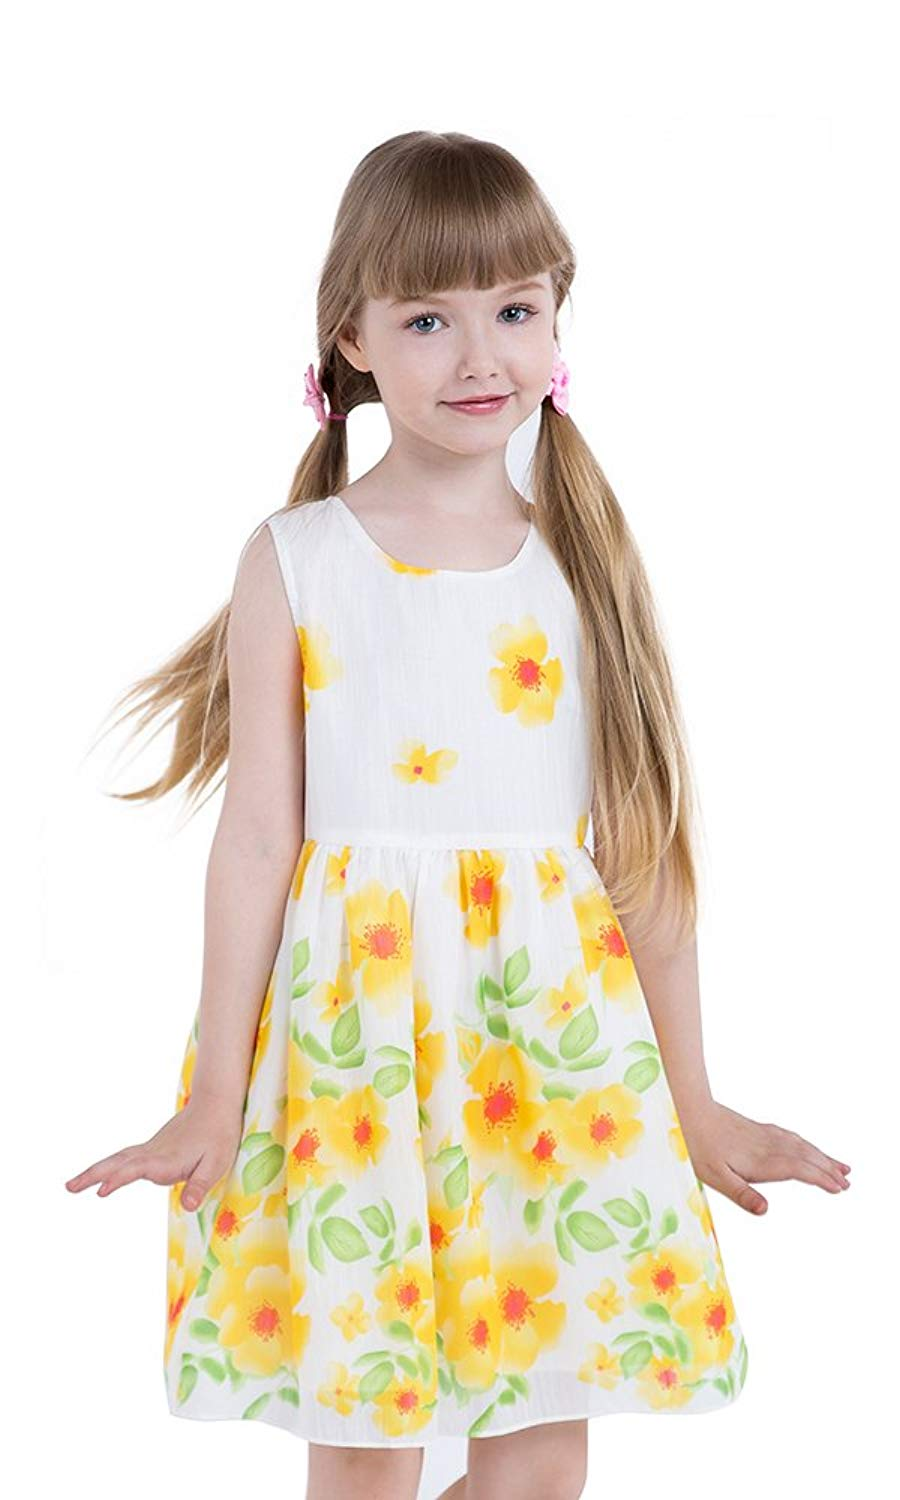 87b2100b2ca89 Get Quotations · JI Little Girls Floral Dresses Yellow Sunflower Dress  Summer Casual Dress for Girls and Kids Size